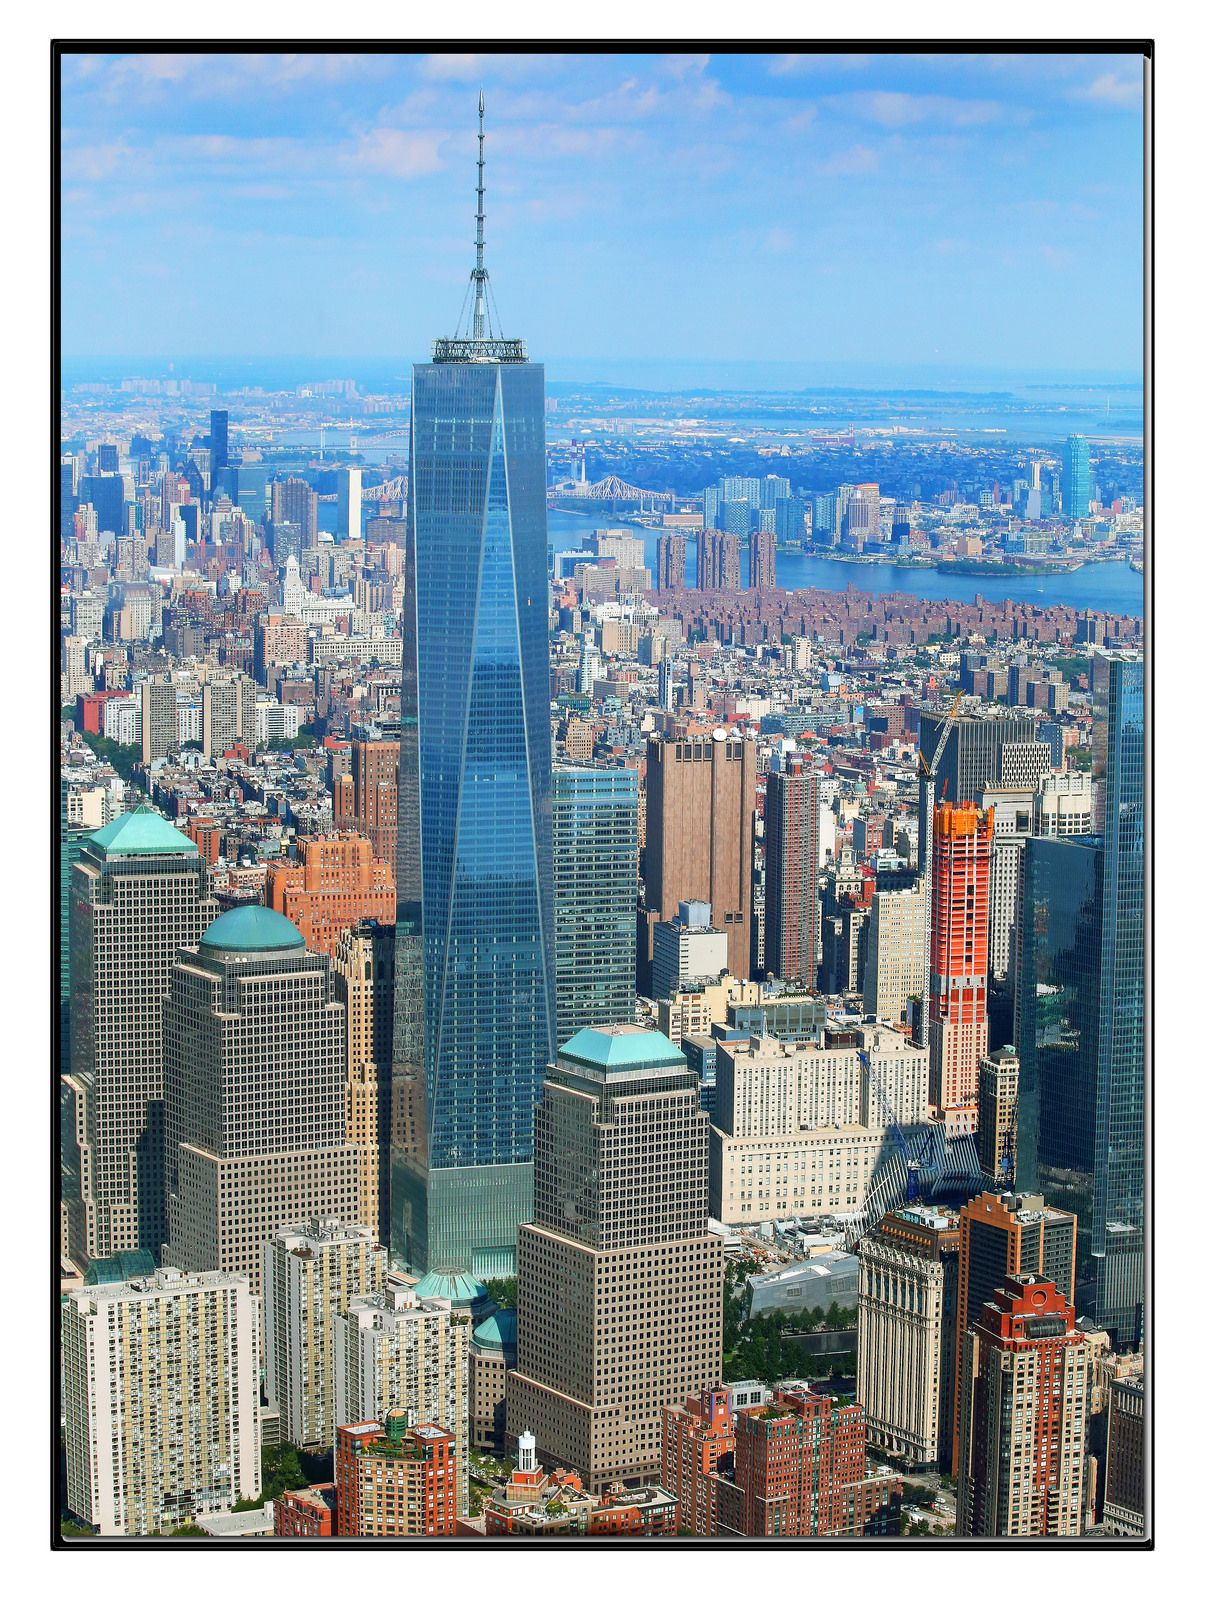 New York One World Trade Center 1 776 Pinnacle 1 373 Roof  # Expo Muebles Wtc D'Europe